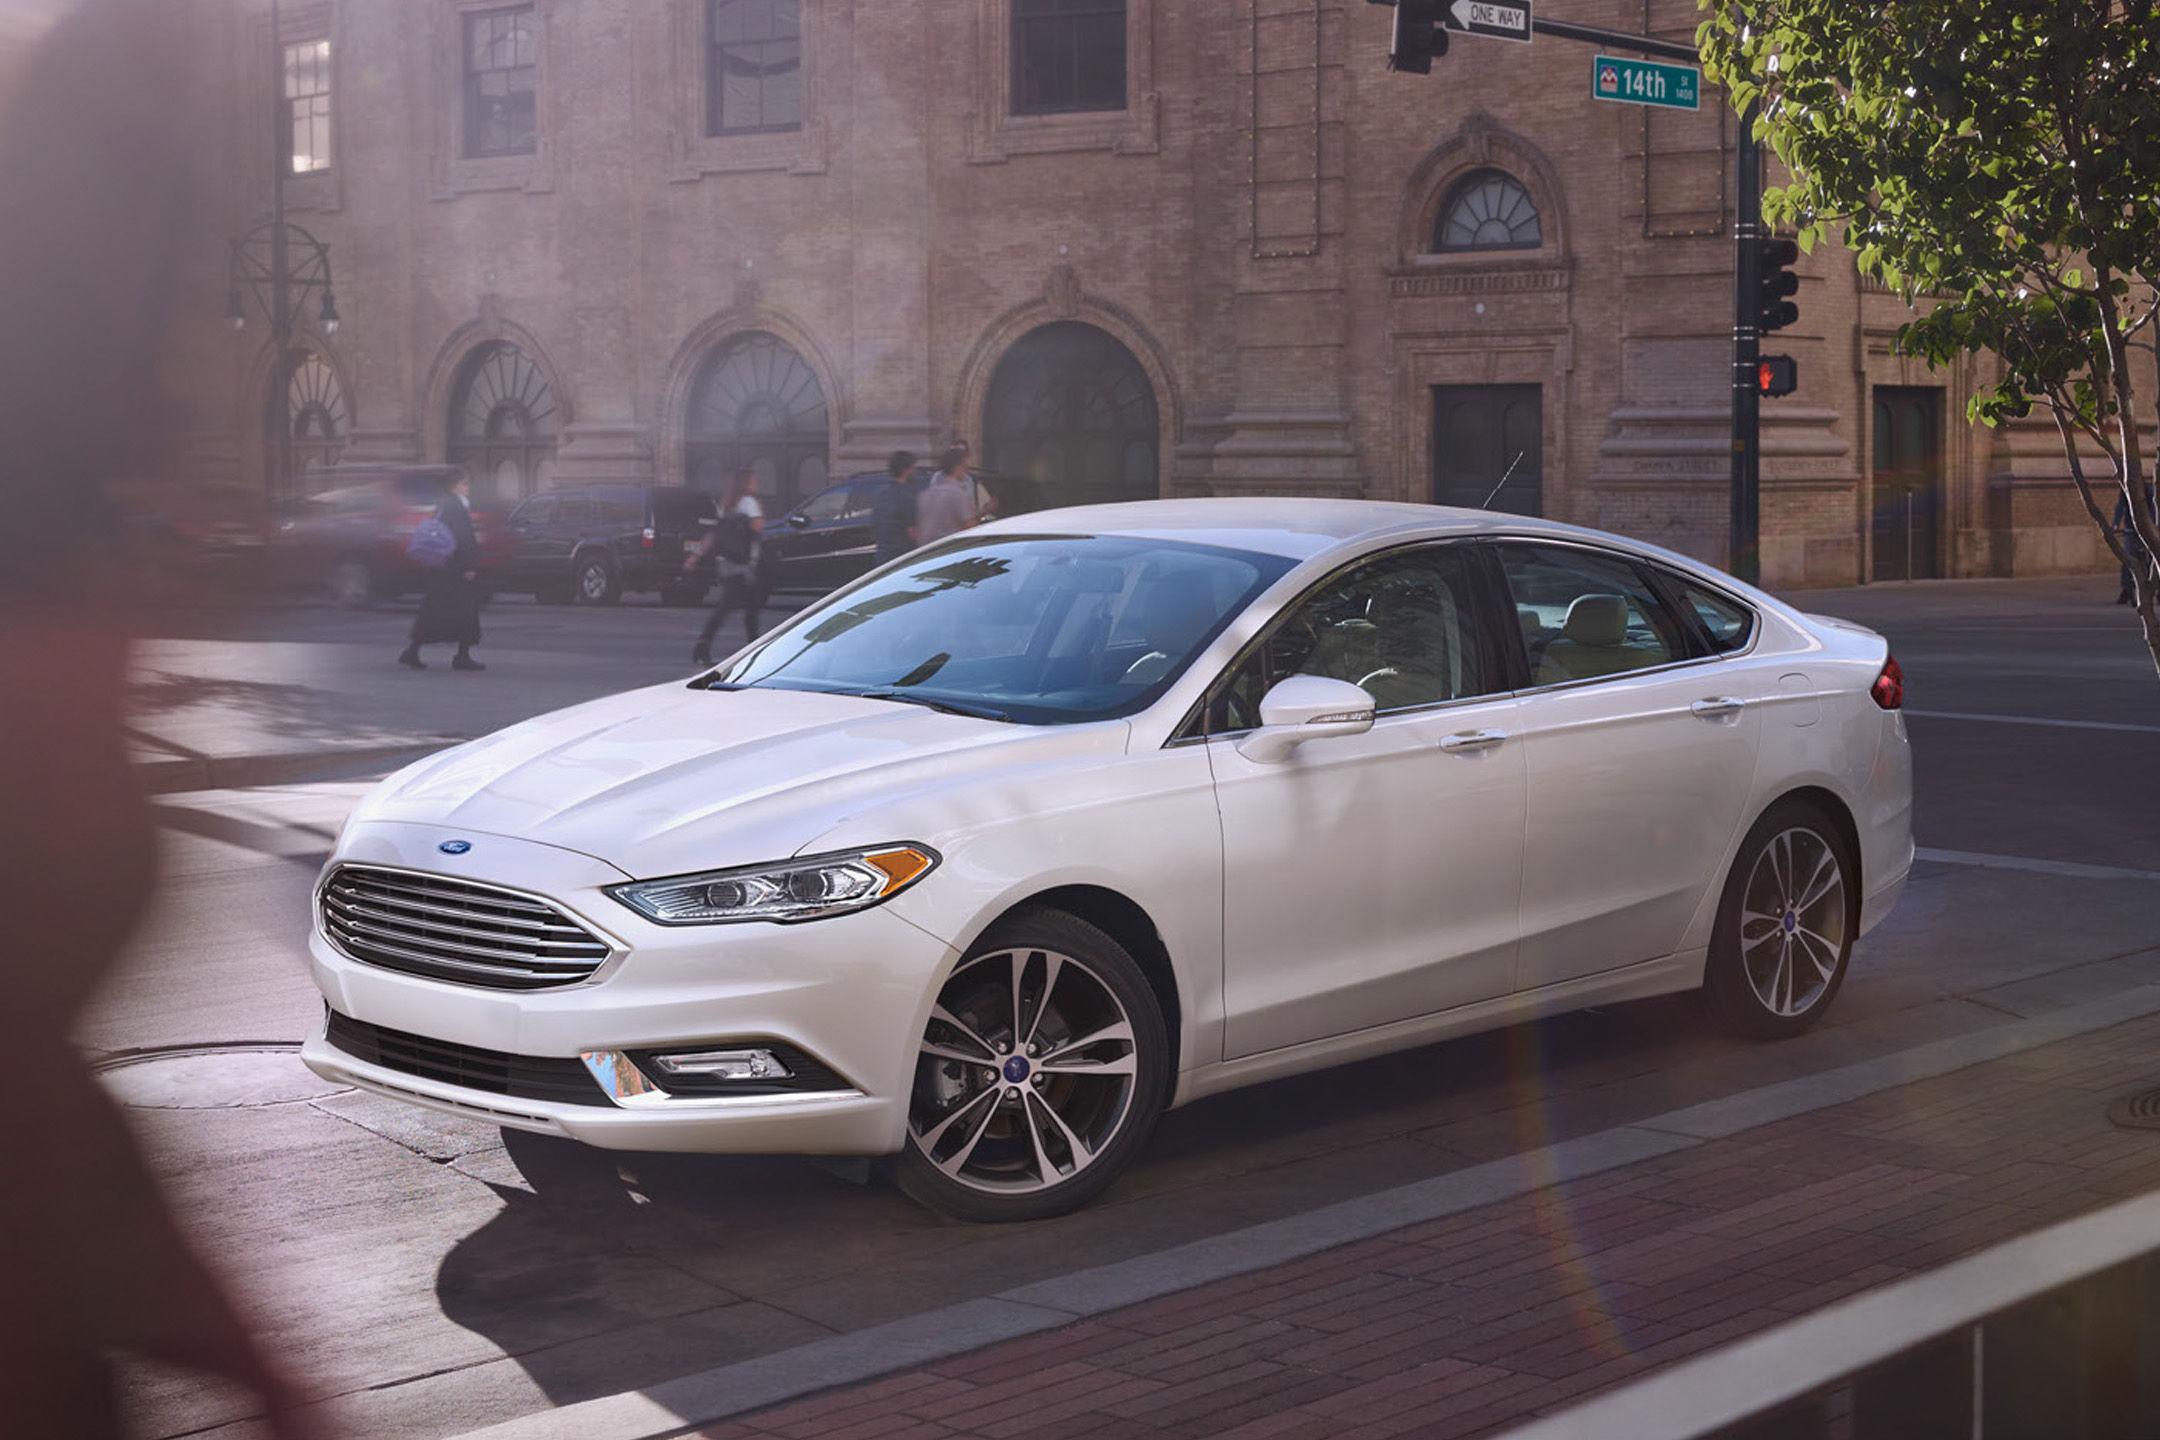 The All New Ford Fusion